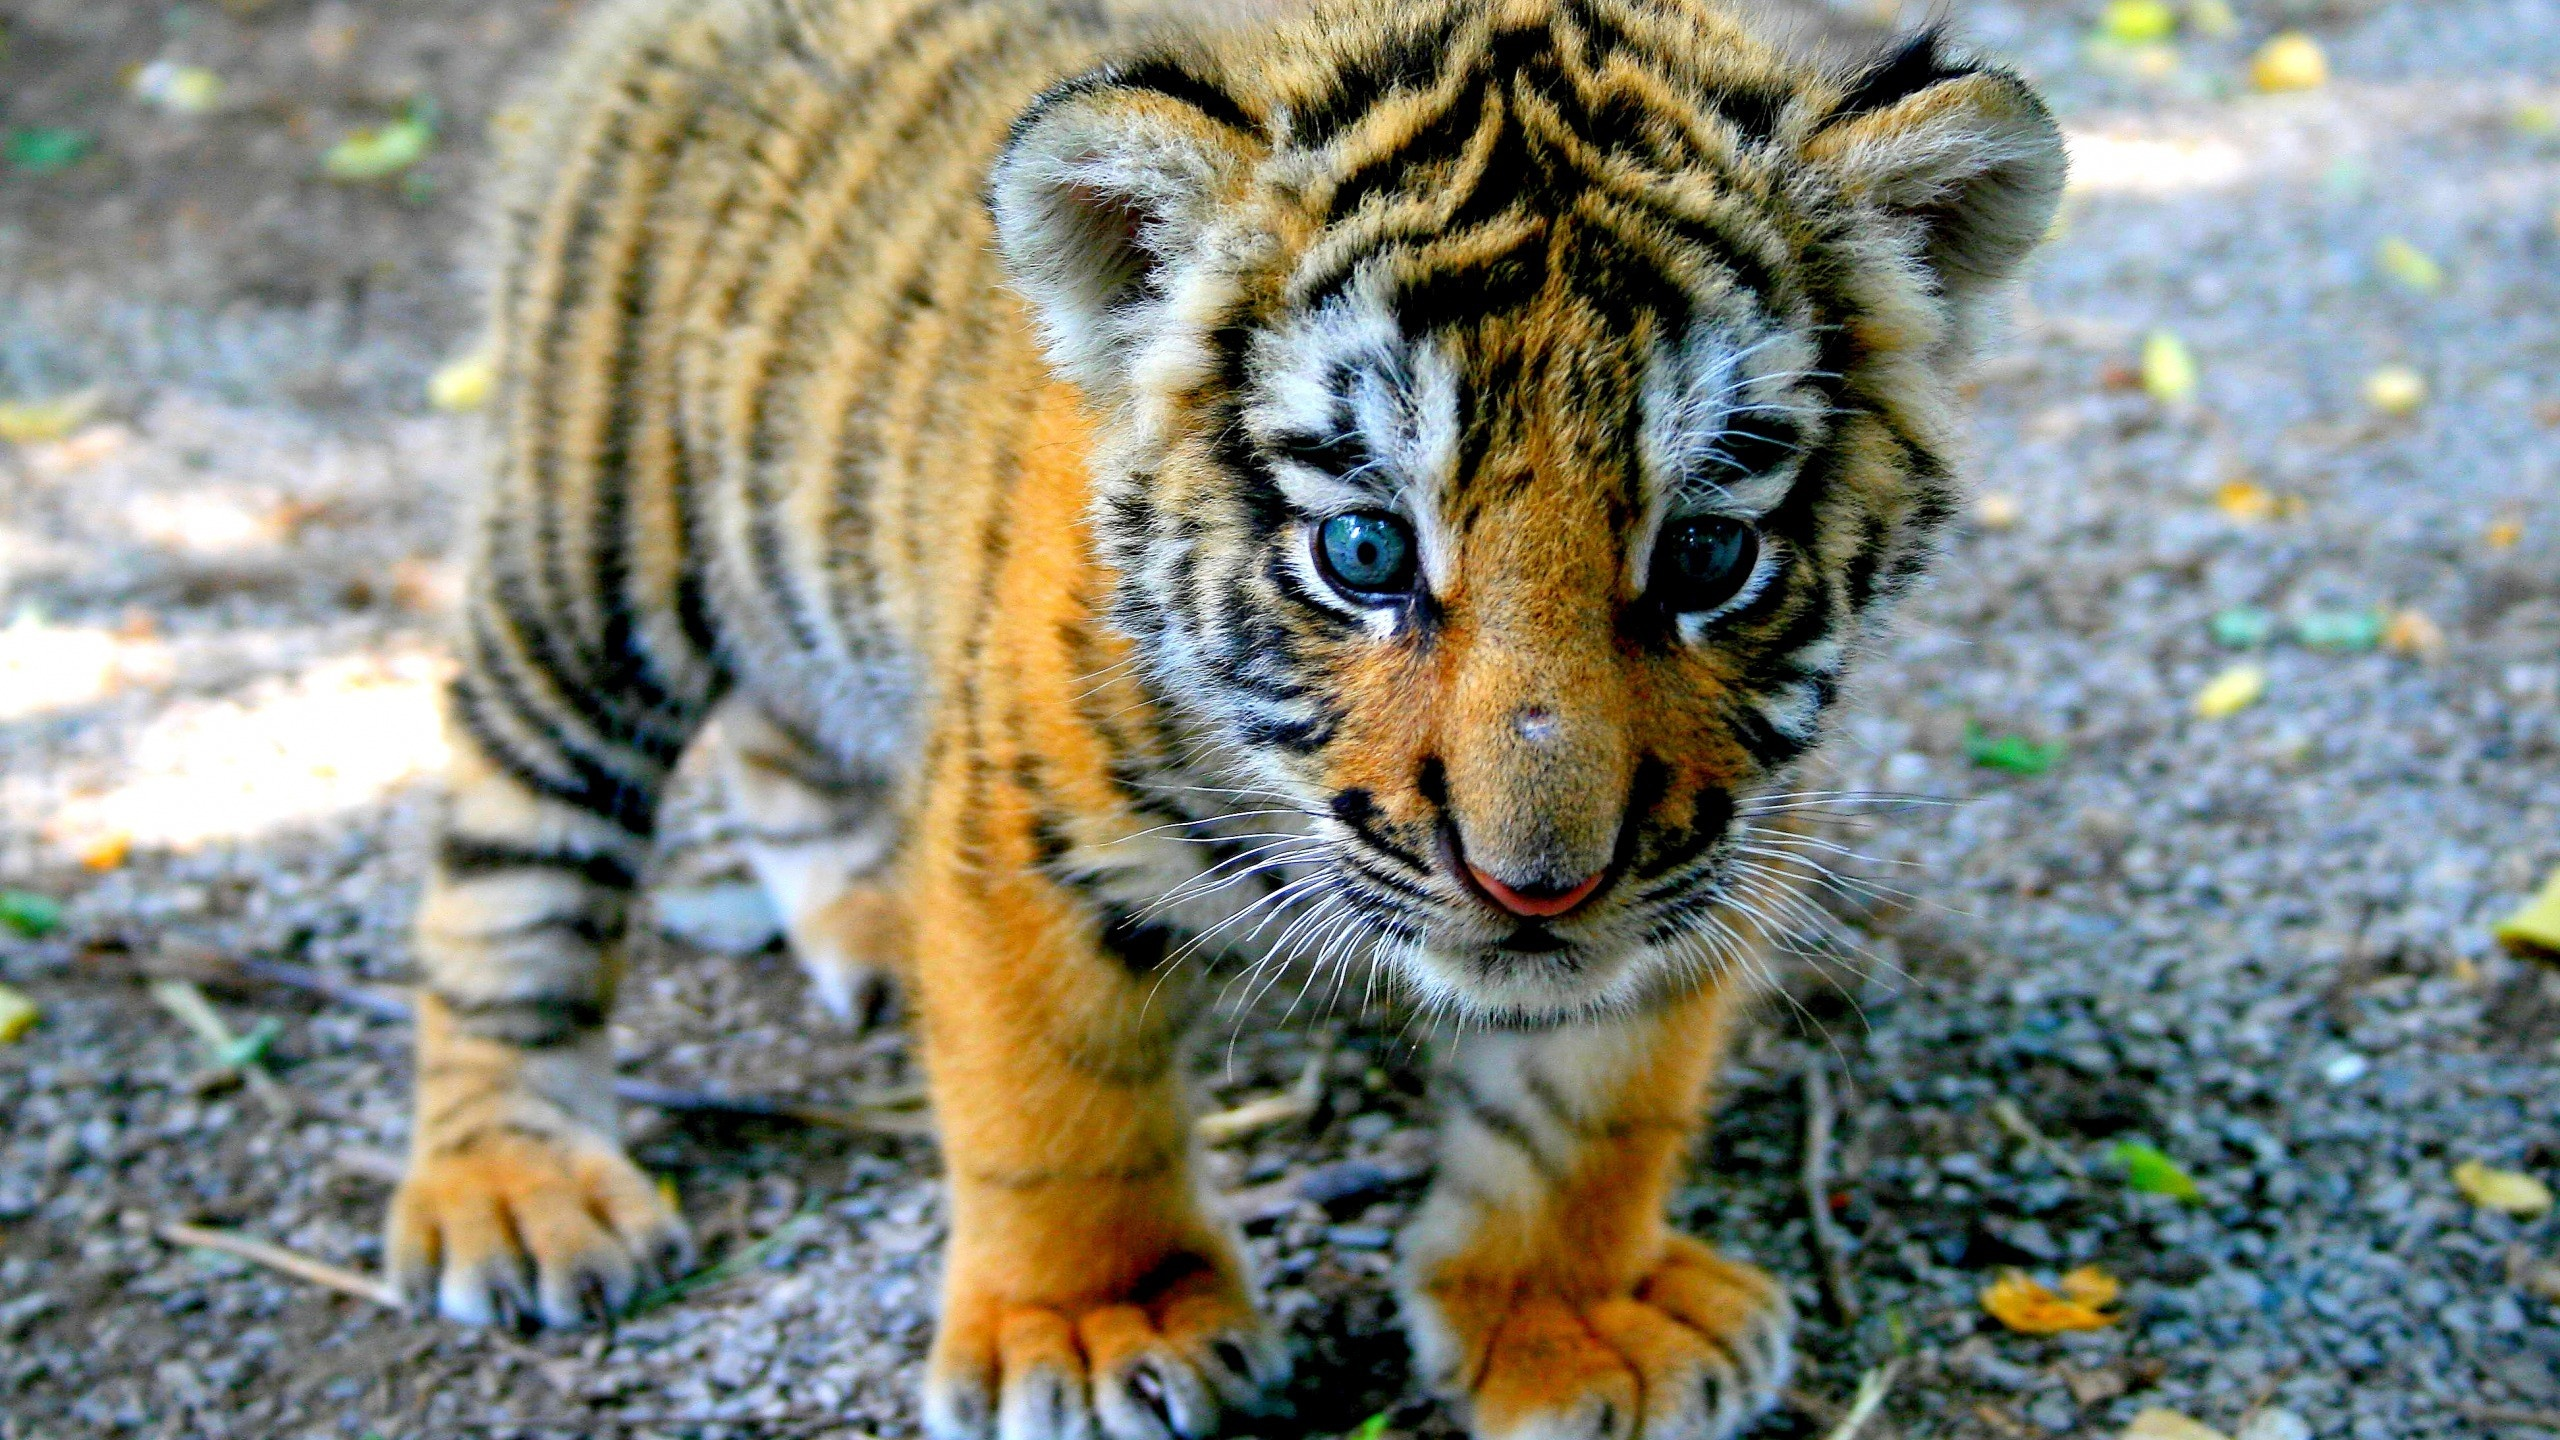 Cute Baby Tiger wallpaper - 1220194